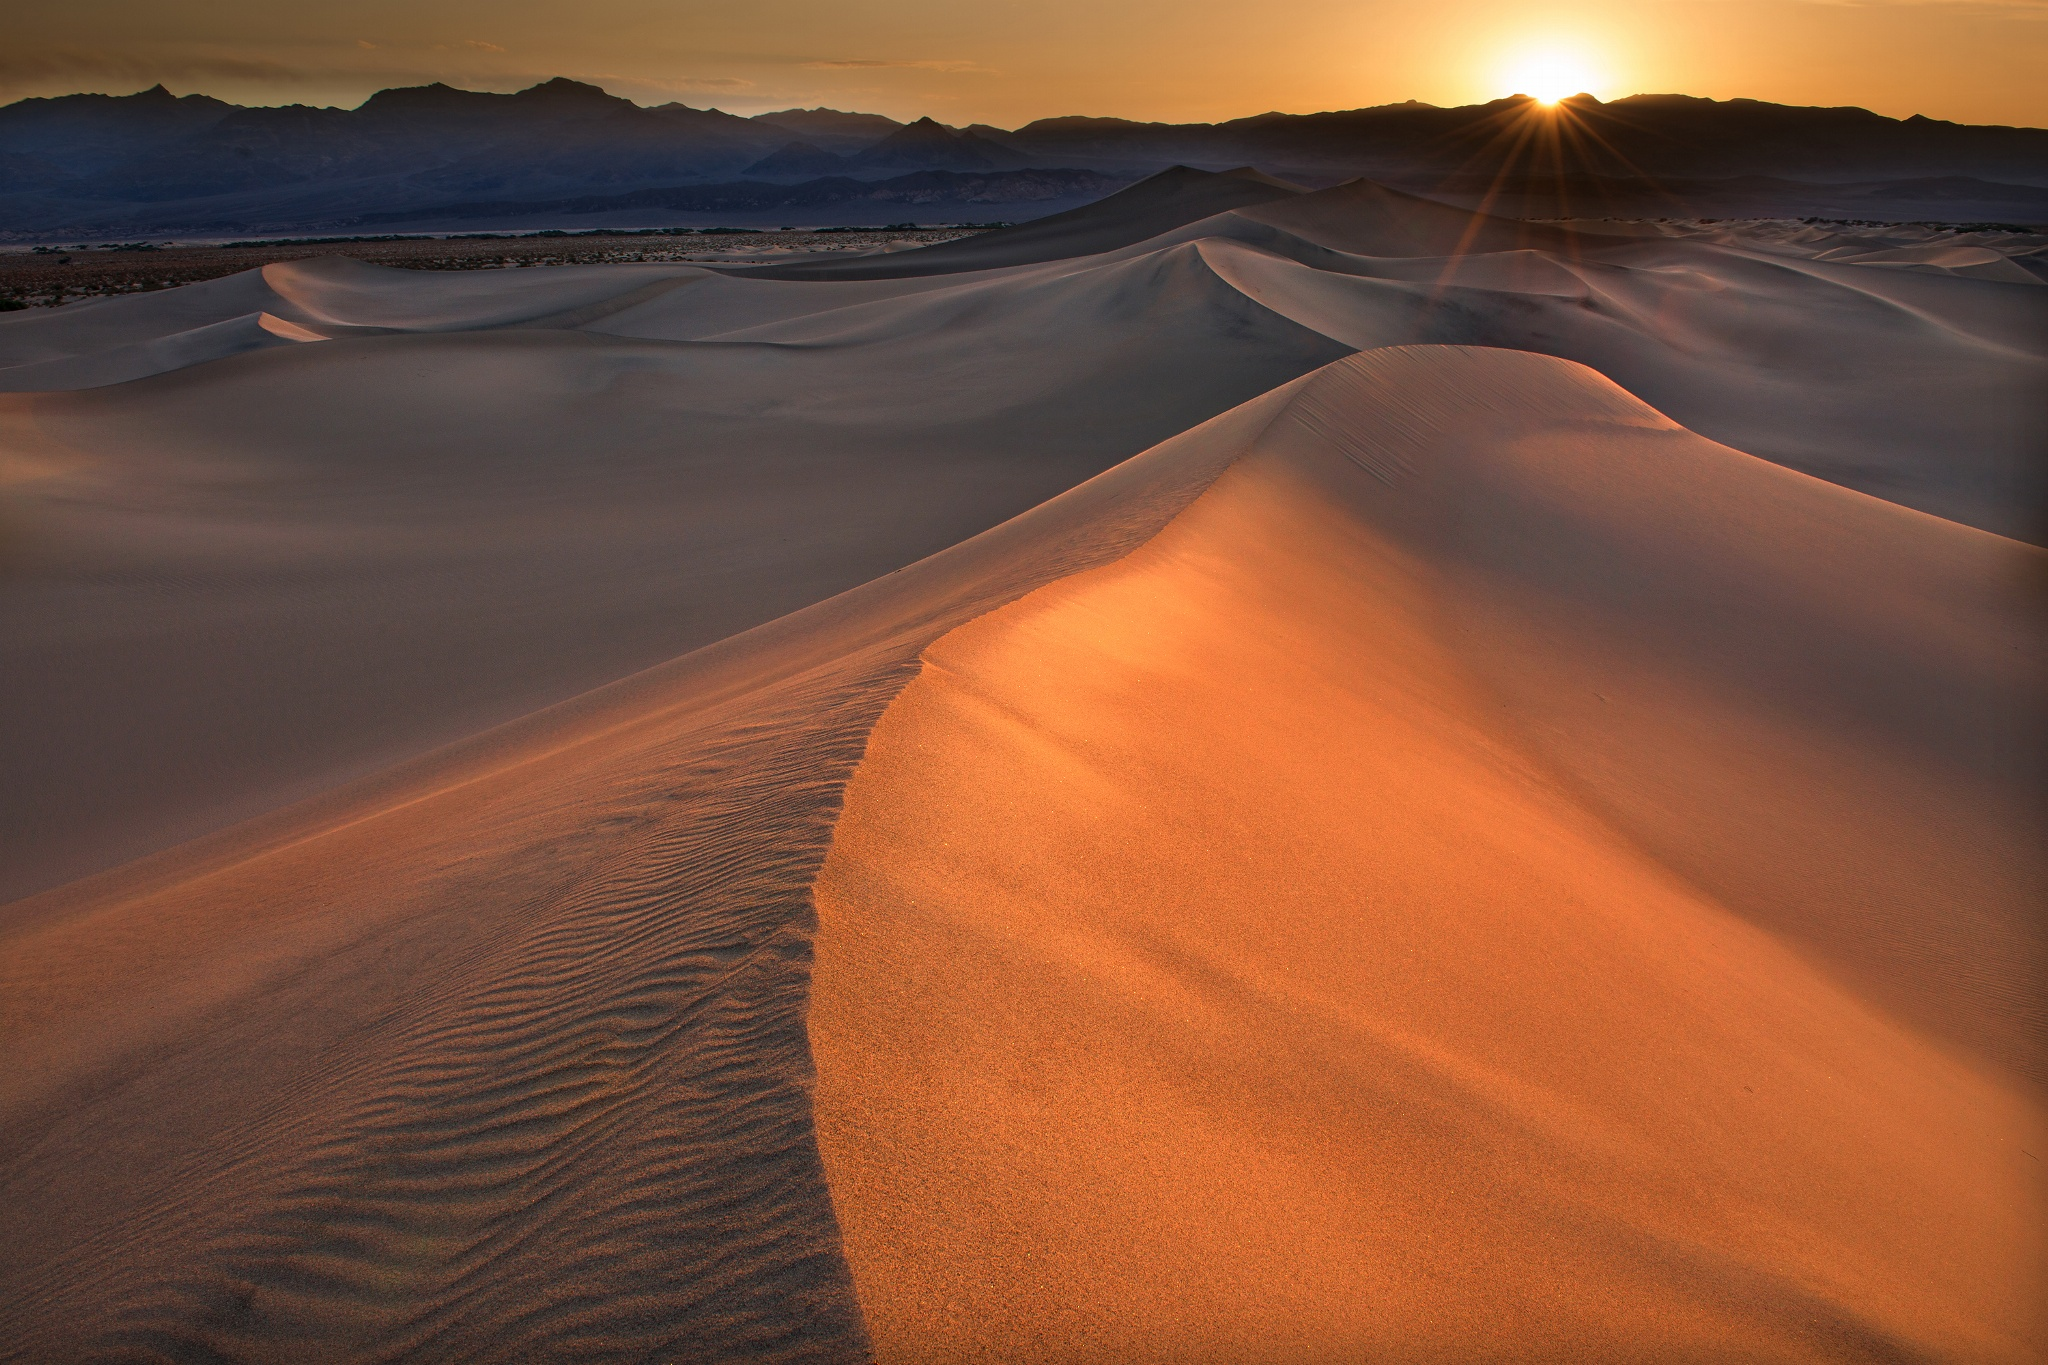 Dunes in Death Valley by Michael Hubrich